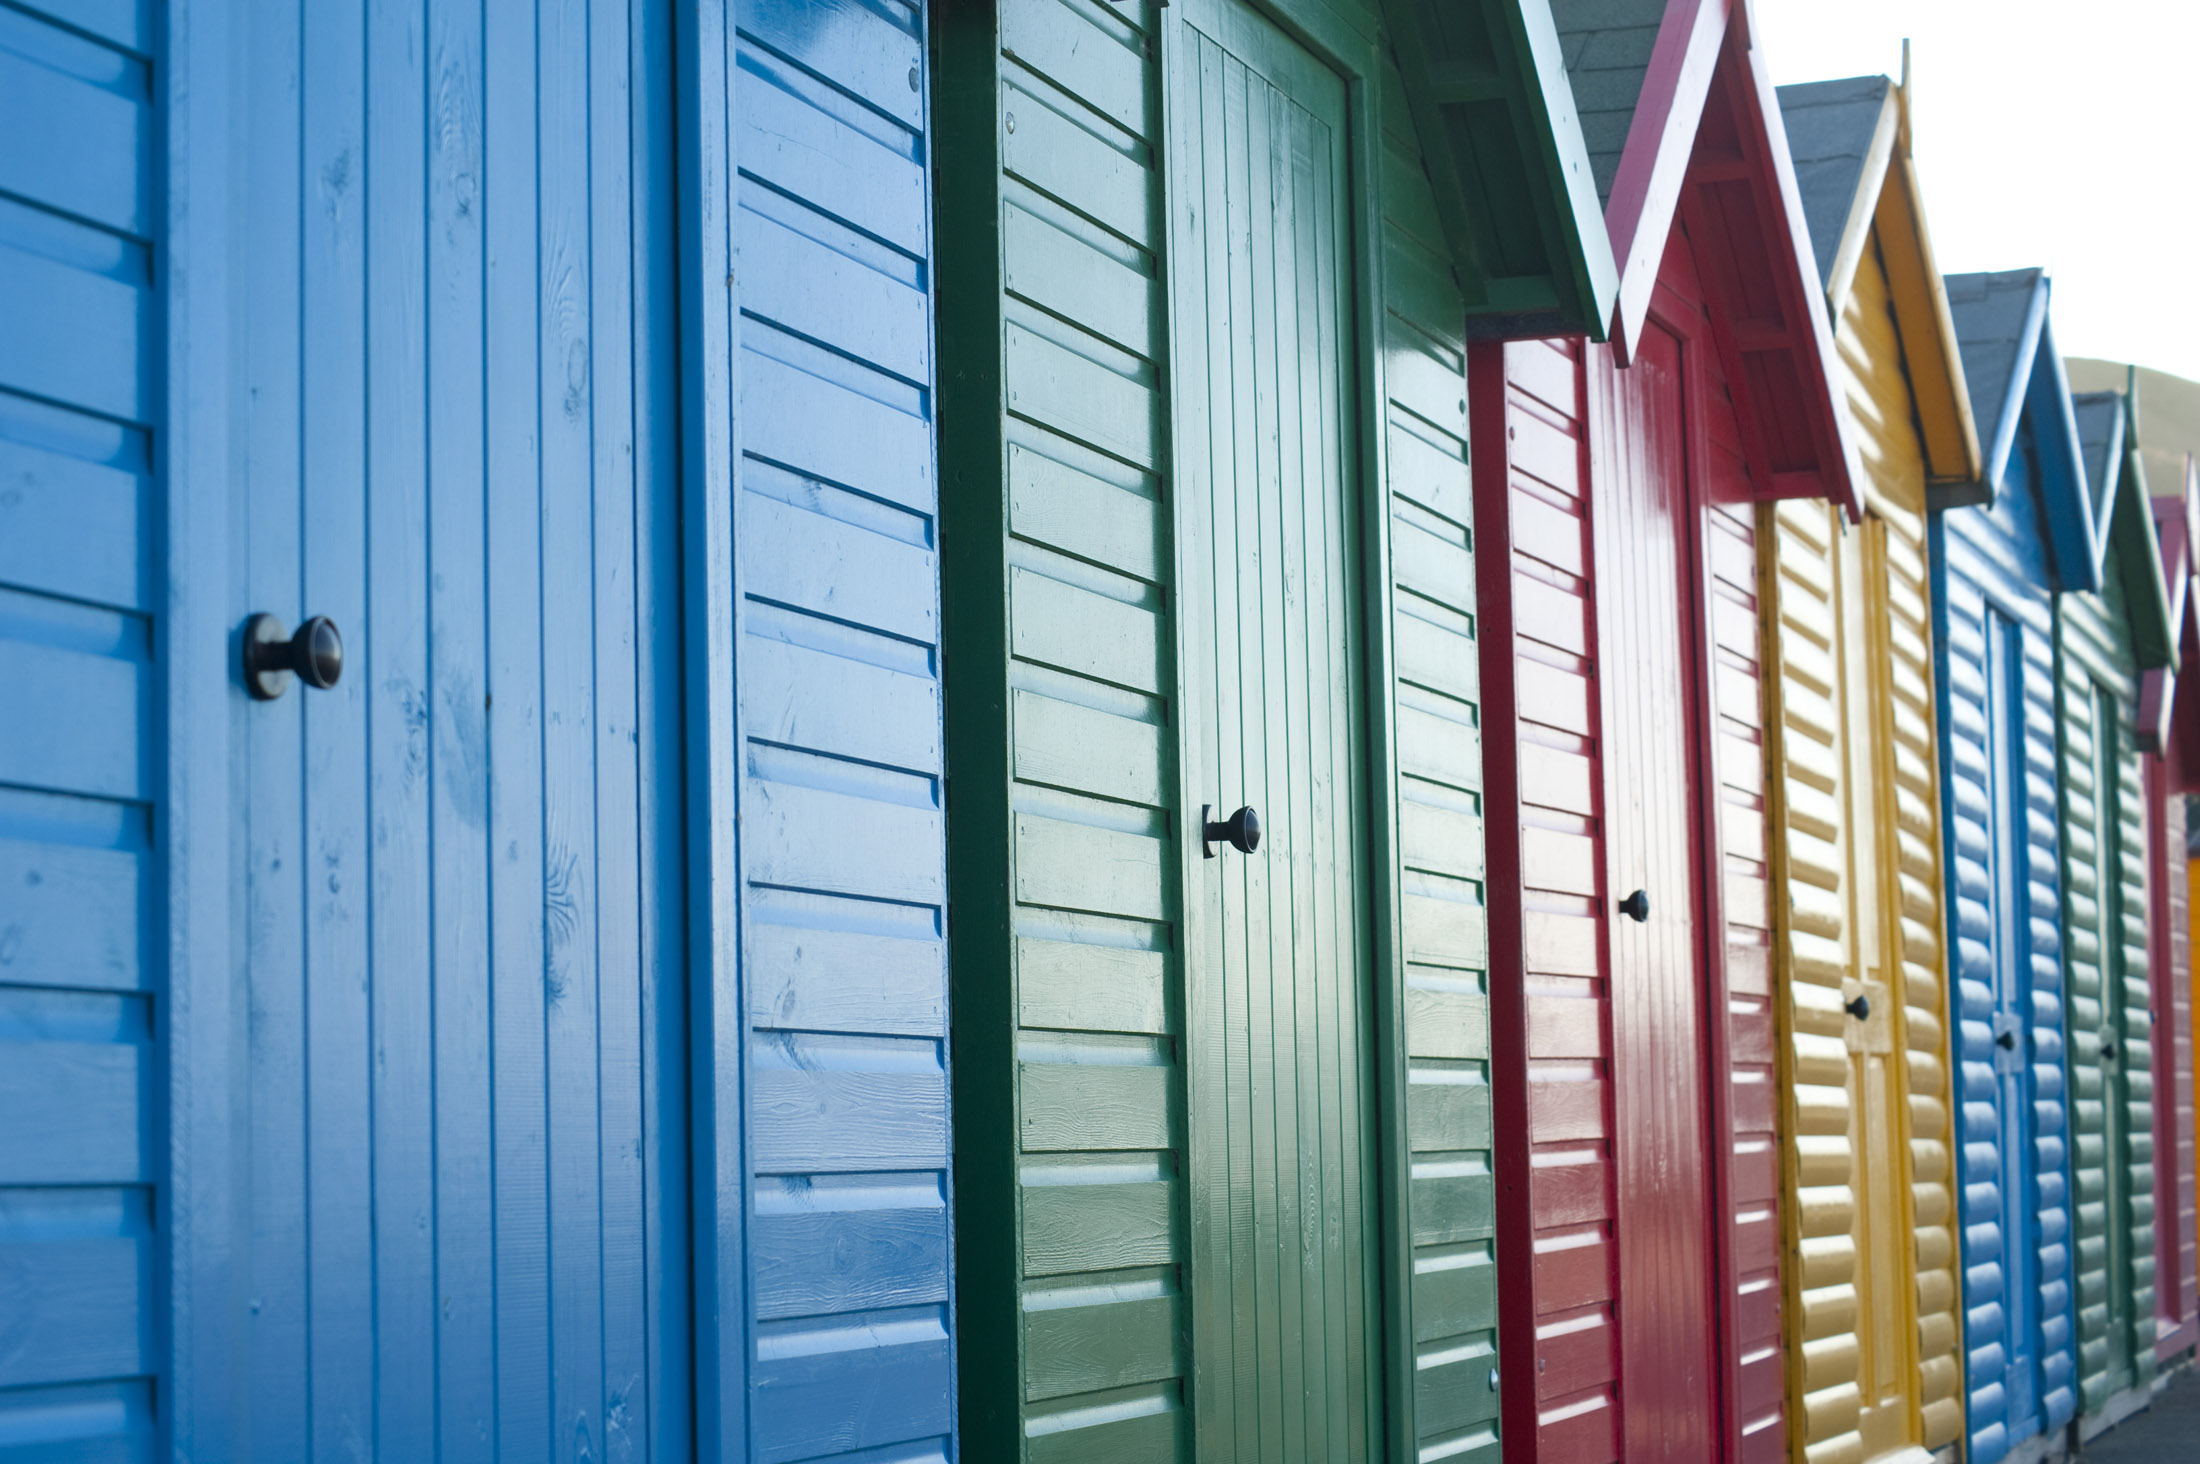 beach huts on the shore at whitbys west cliff